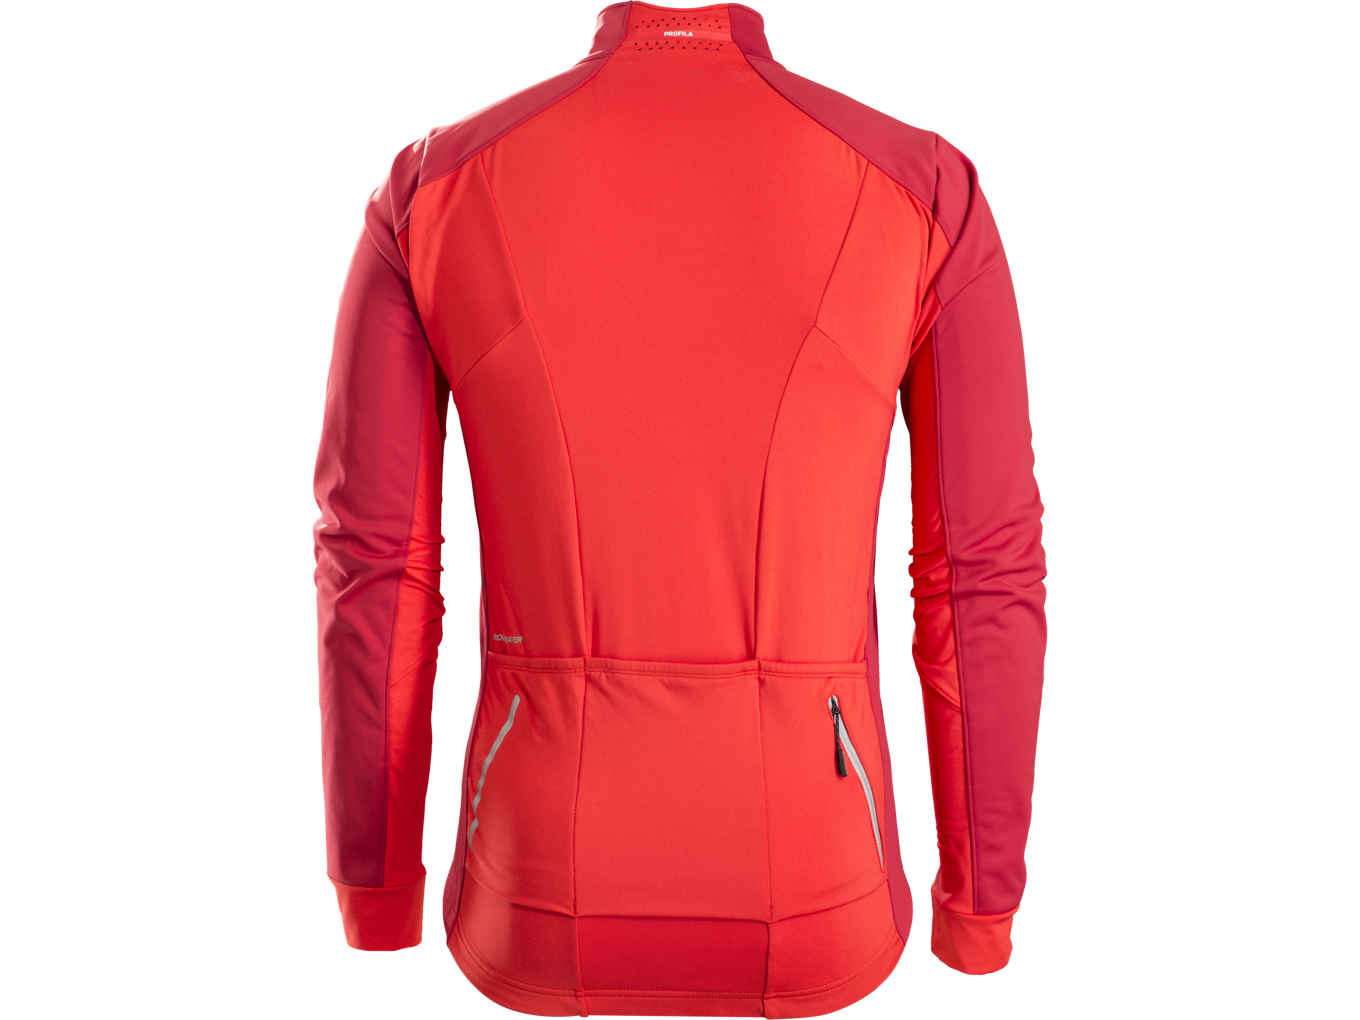 7 of the Most Stylish Casual Winter Cycling Jackets